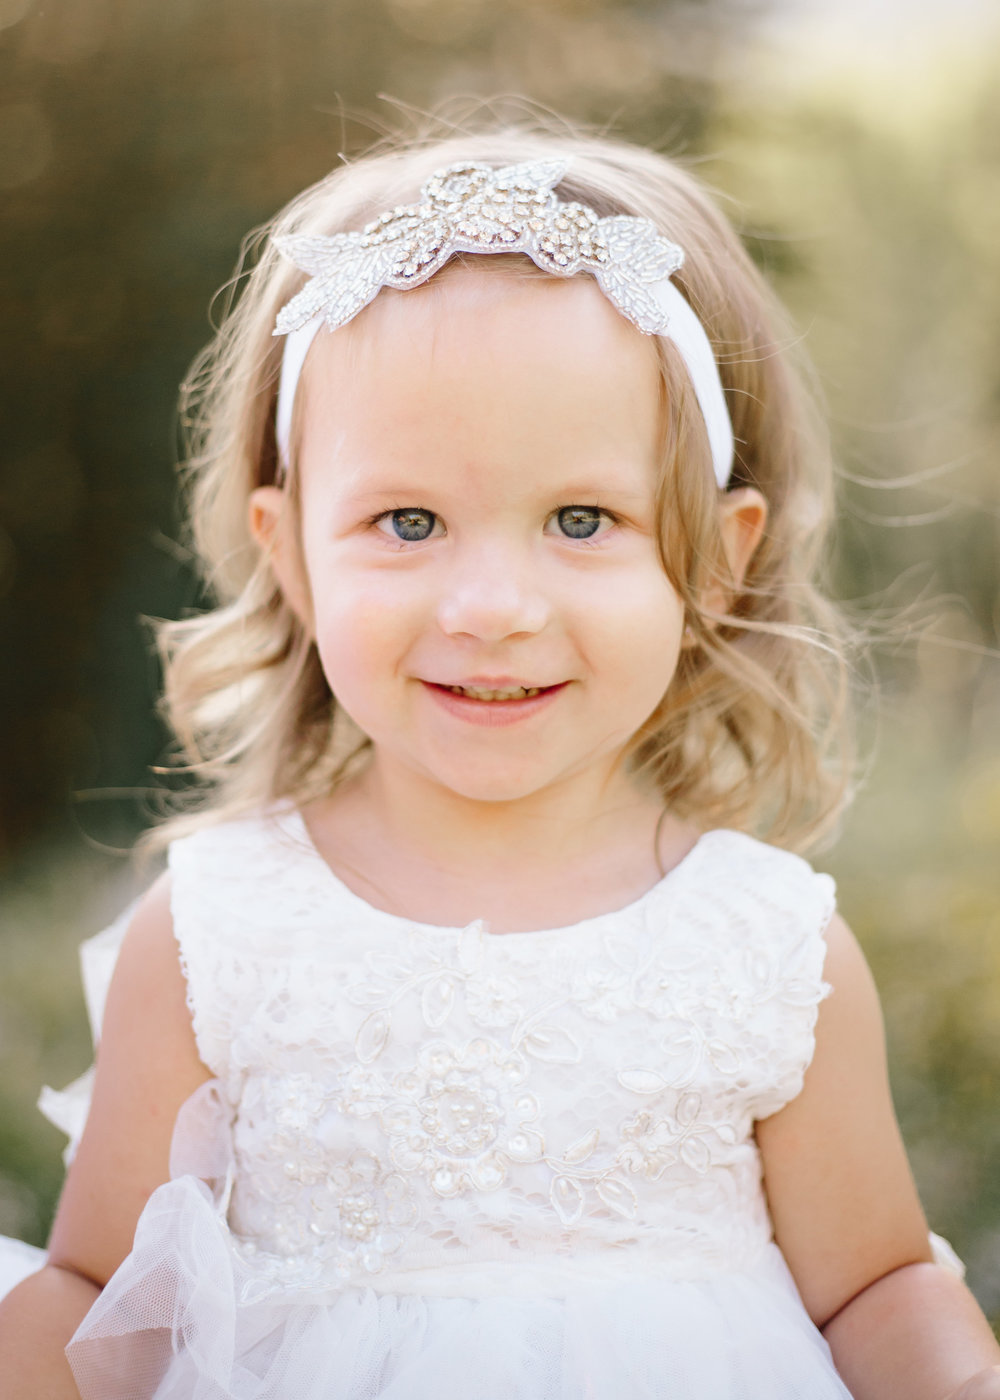 Harlow Diane - I love to take care of my baby dolls. They are all named baby. I love animals, birds are my favorite. I also love to sing and dance but mostly when no one is watching. My favorite thing to do is cuddle with my babies, and my daddy, mommy, and brother.